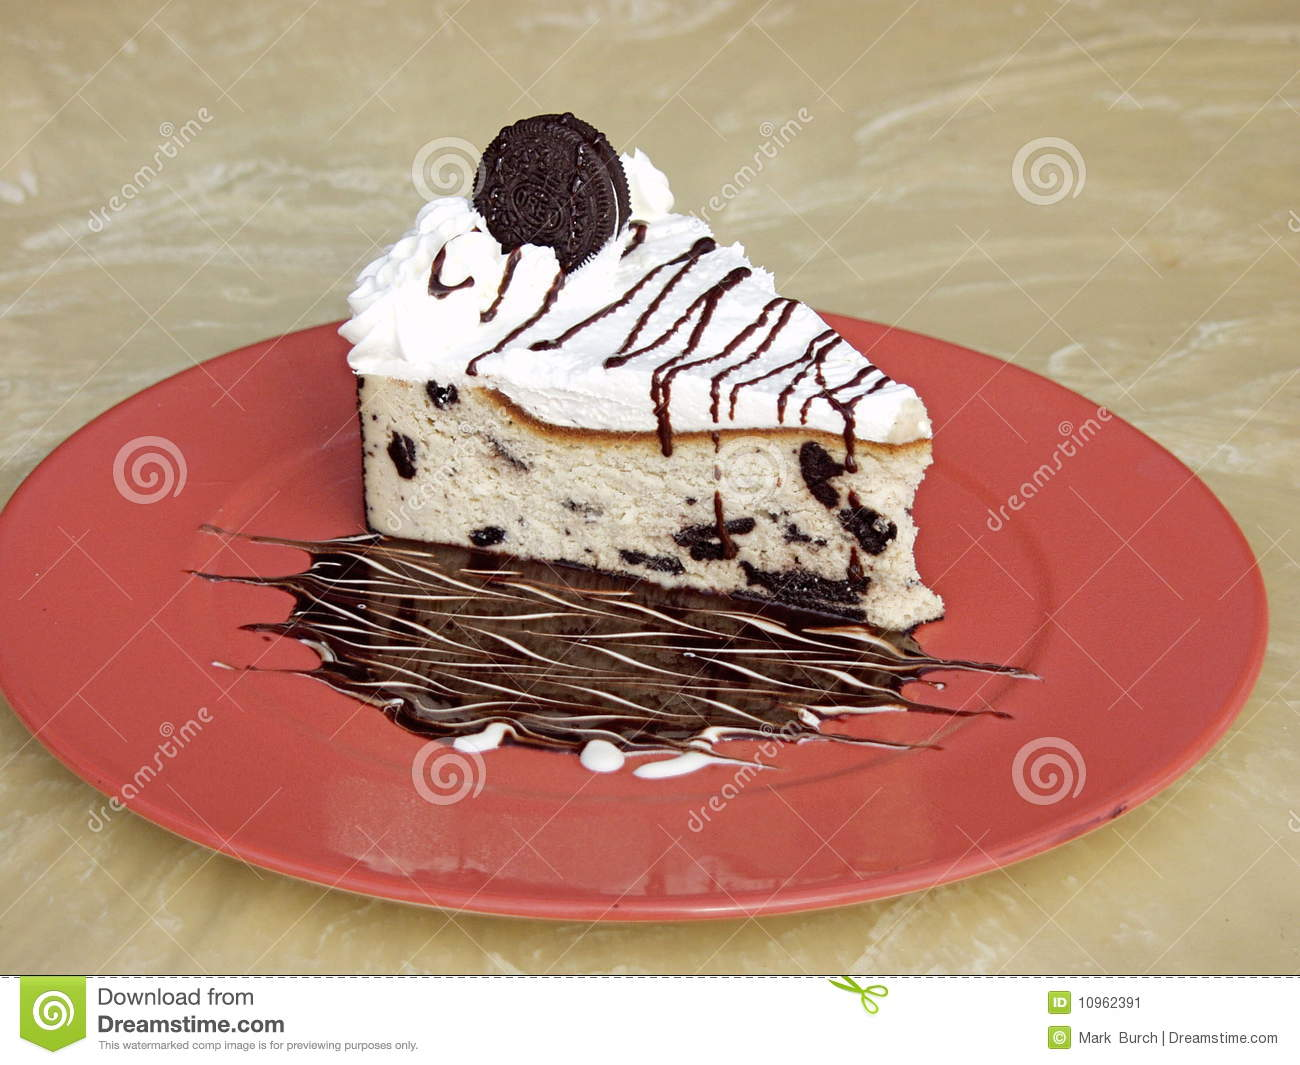 Oreo Cookie Cake on a Plate